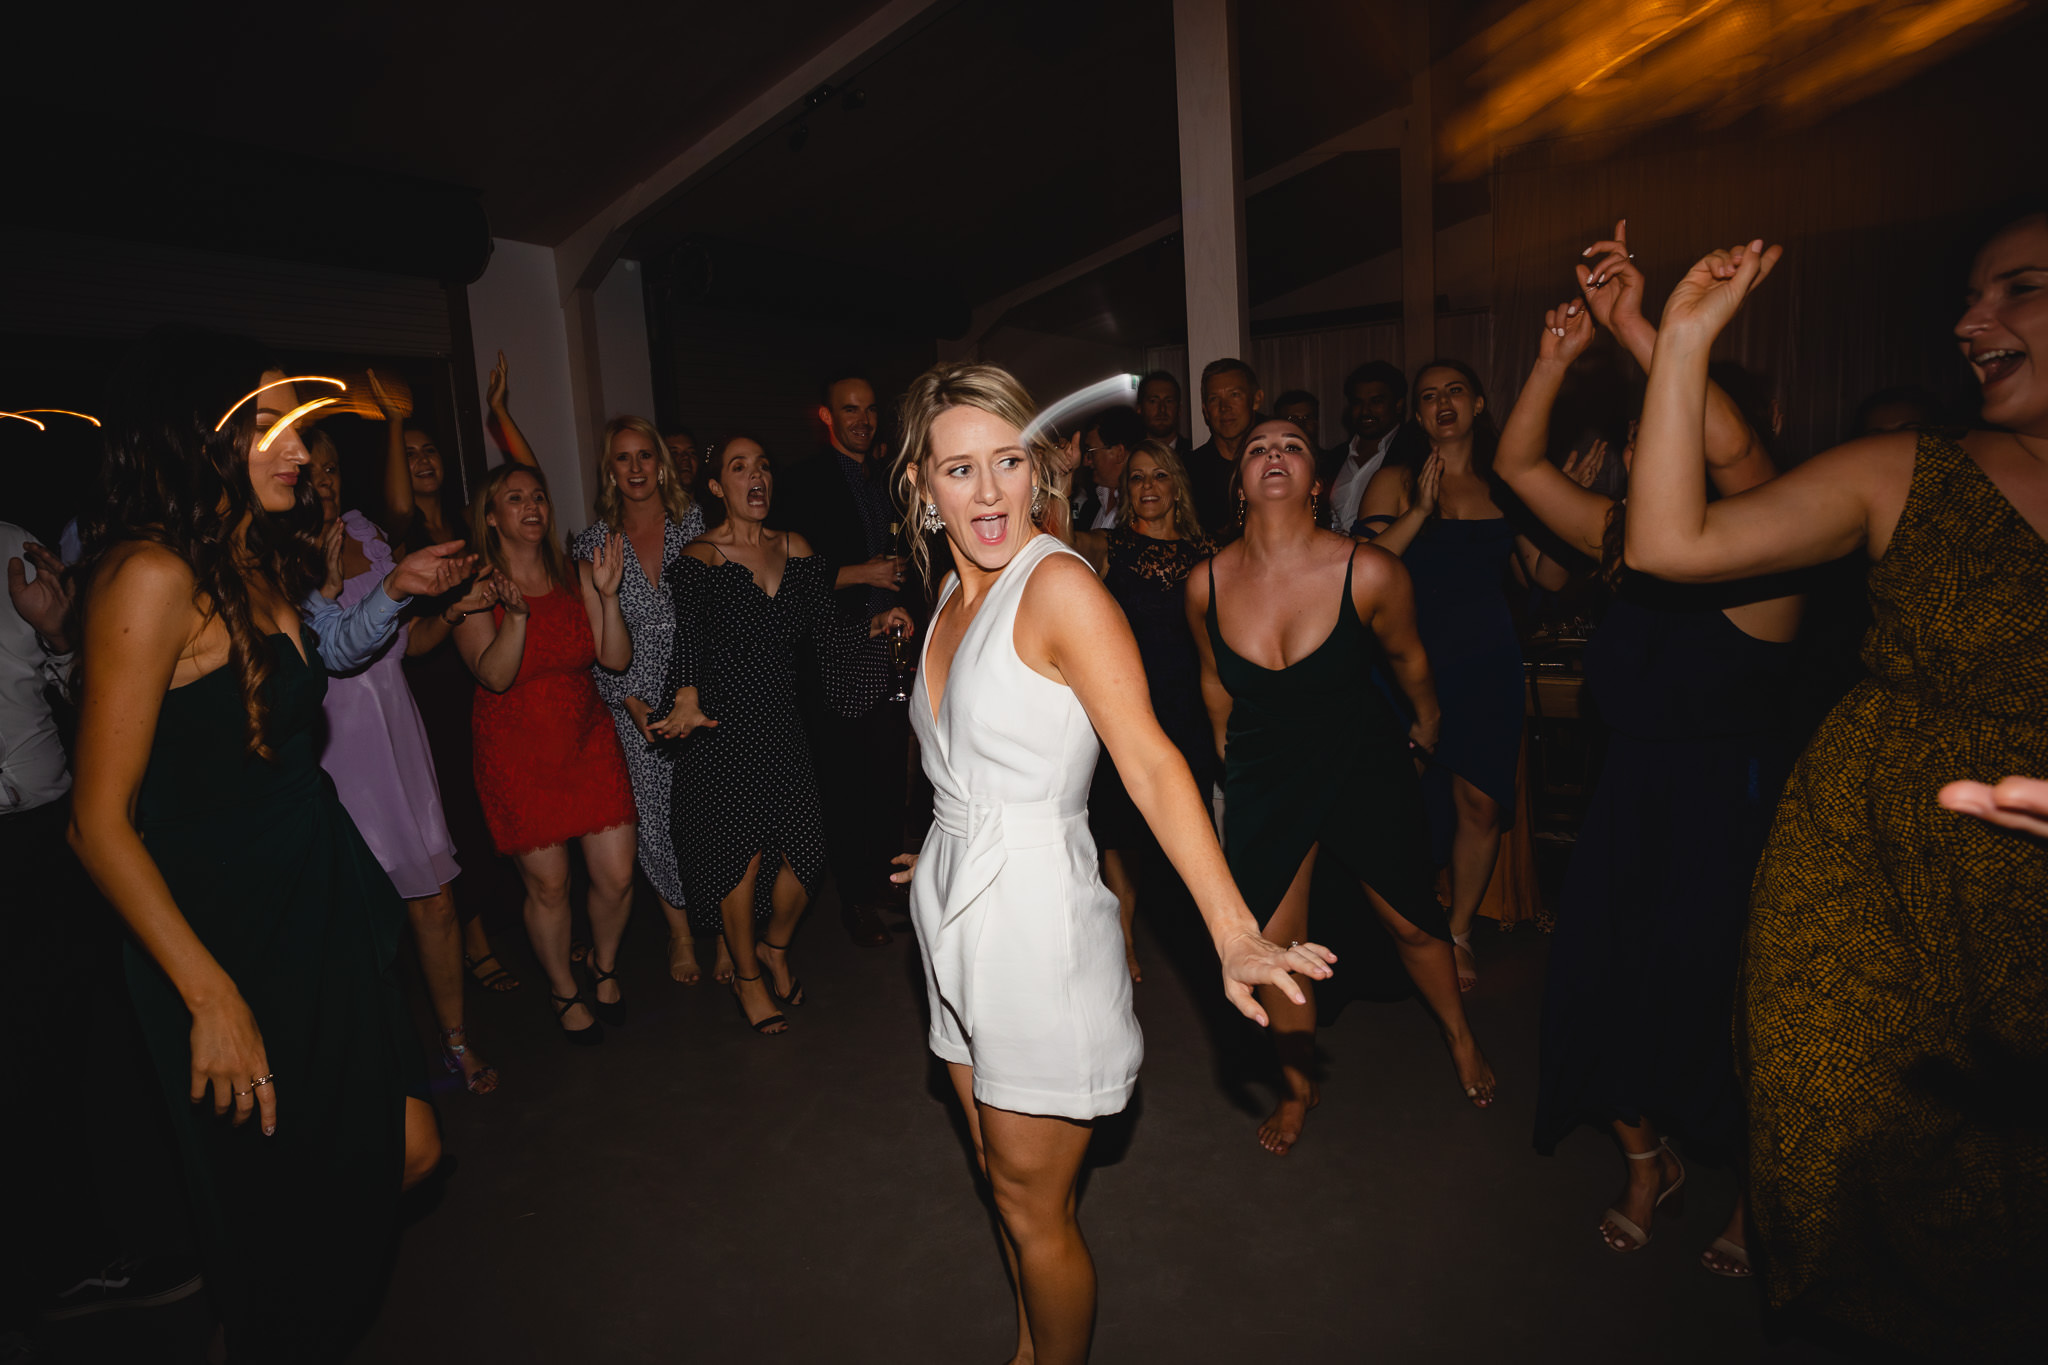 bride throwing dance moves in white wedding jumpsuit at wedding reception